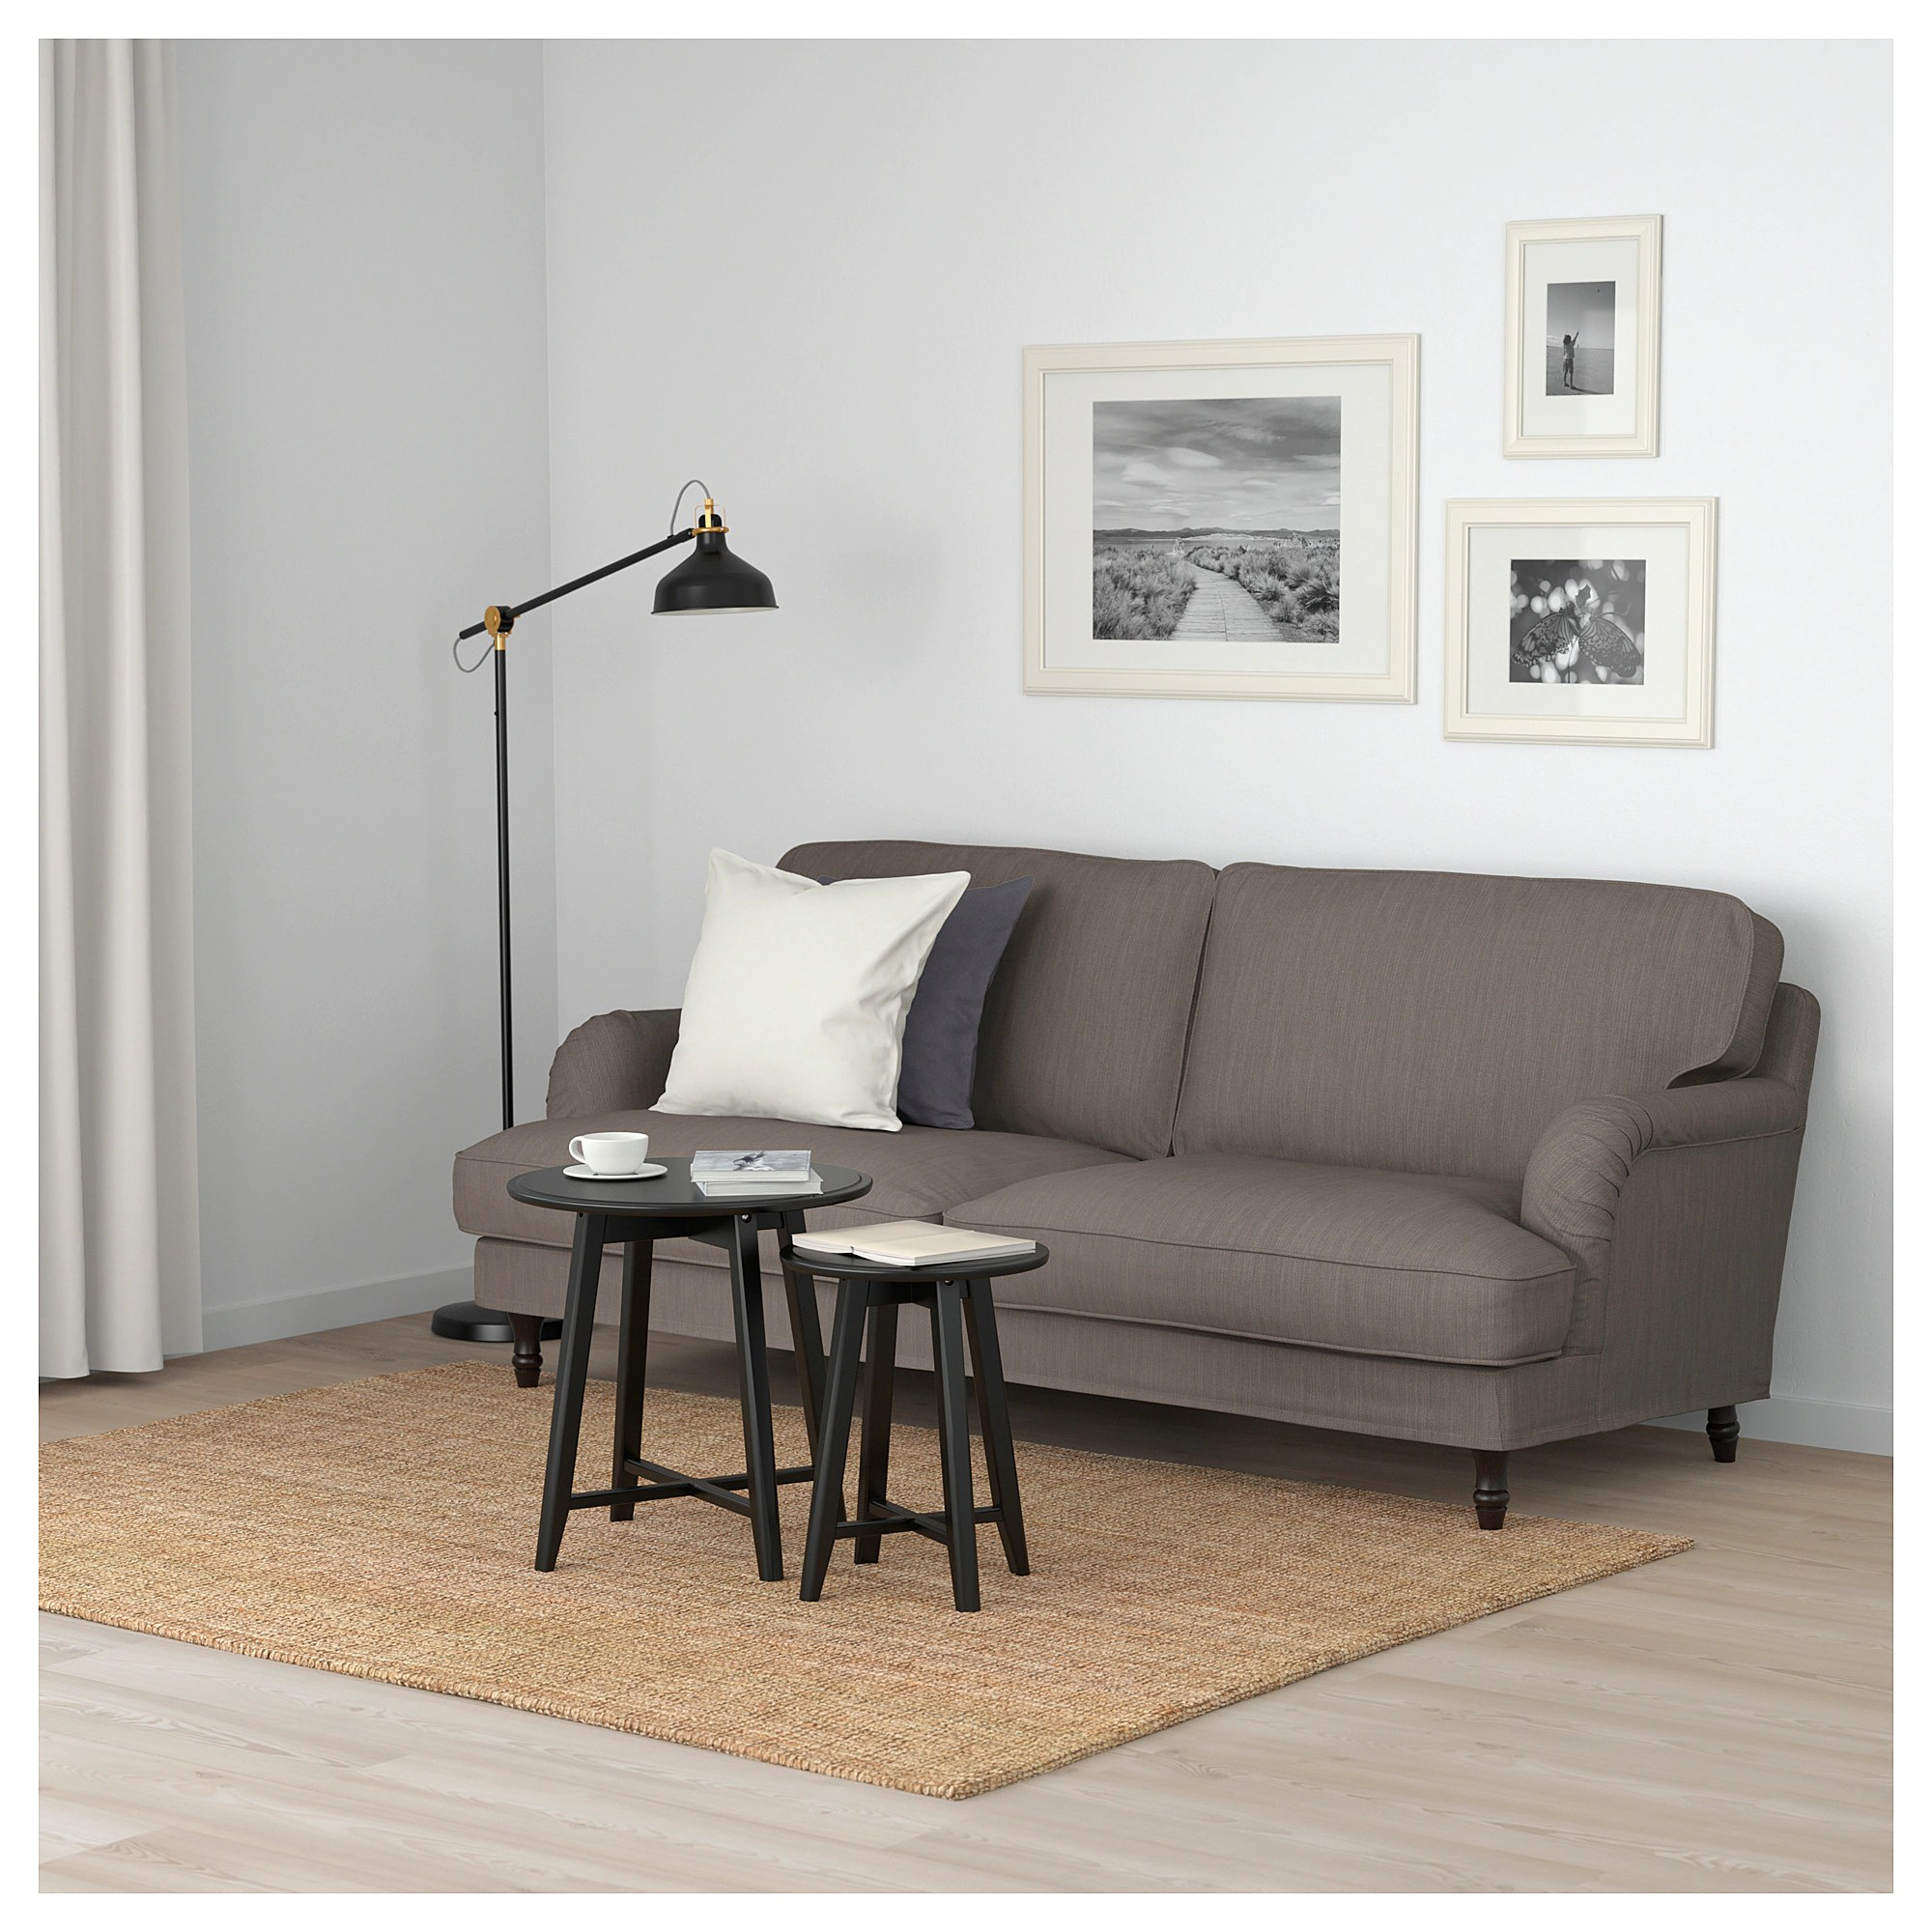 Stocksund 3 Seat Sofa Nolhaga Grey Beige Black Wood Ikea - Ikea Sofa Quality